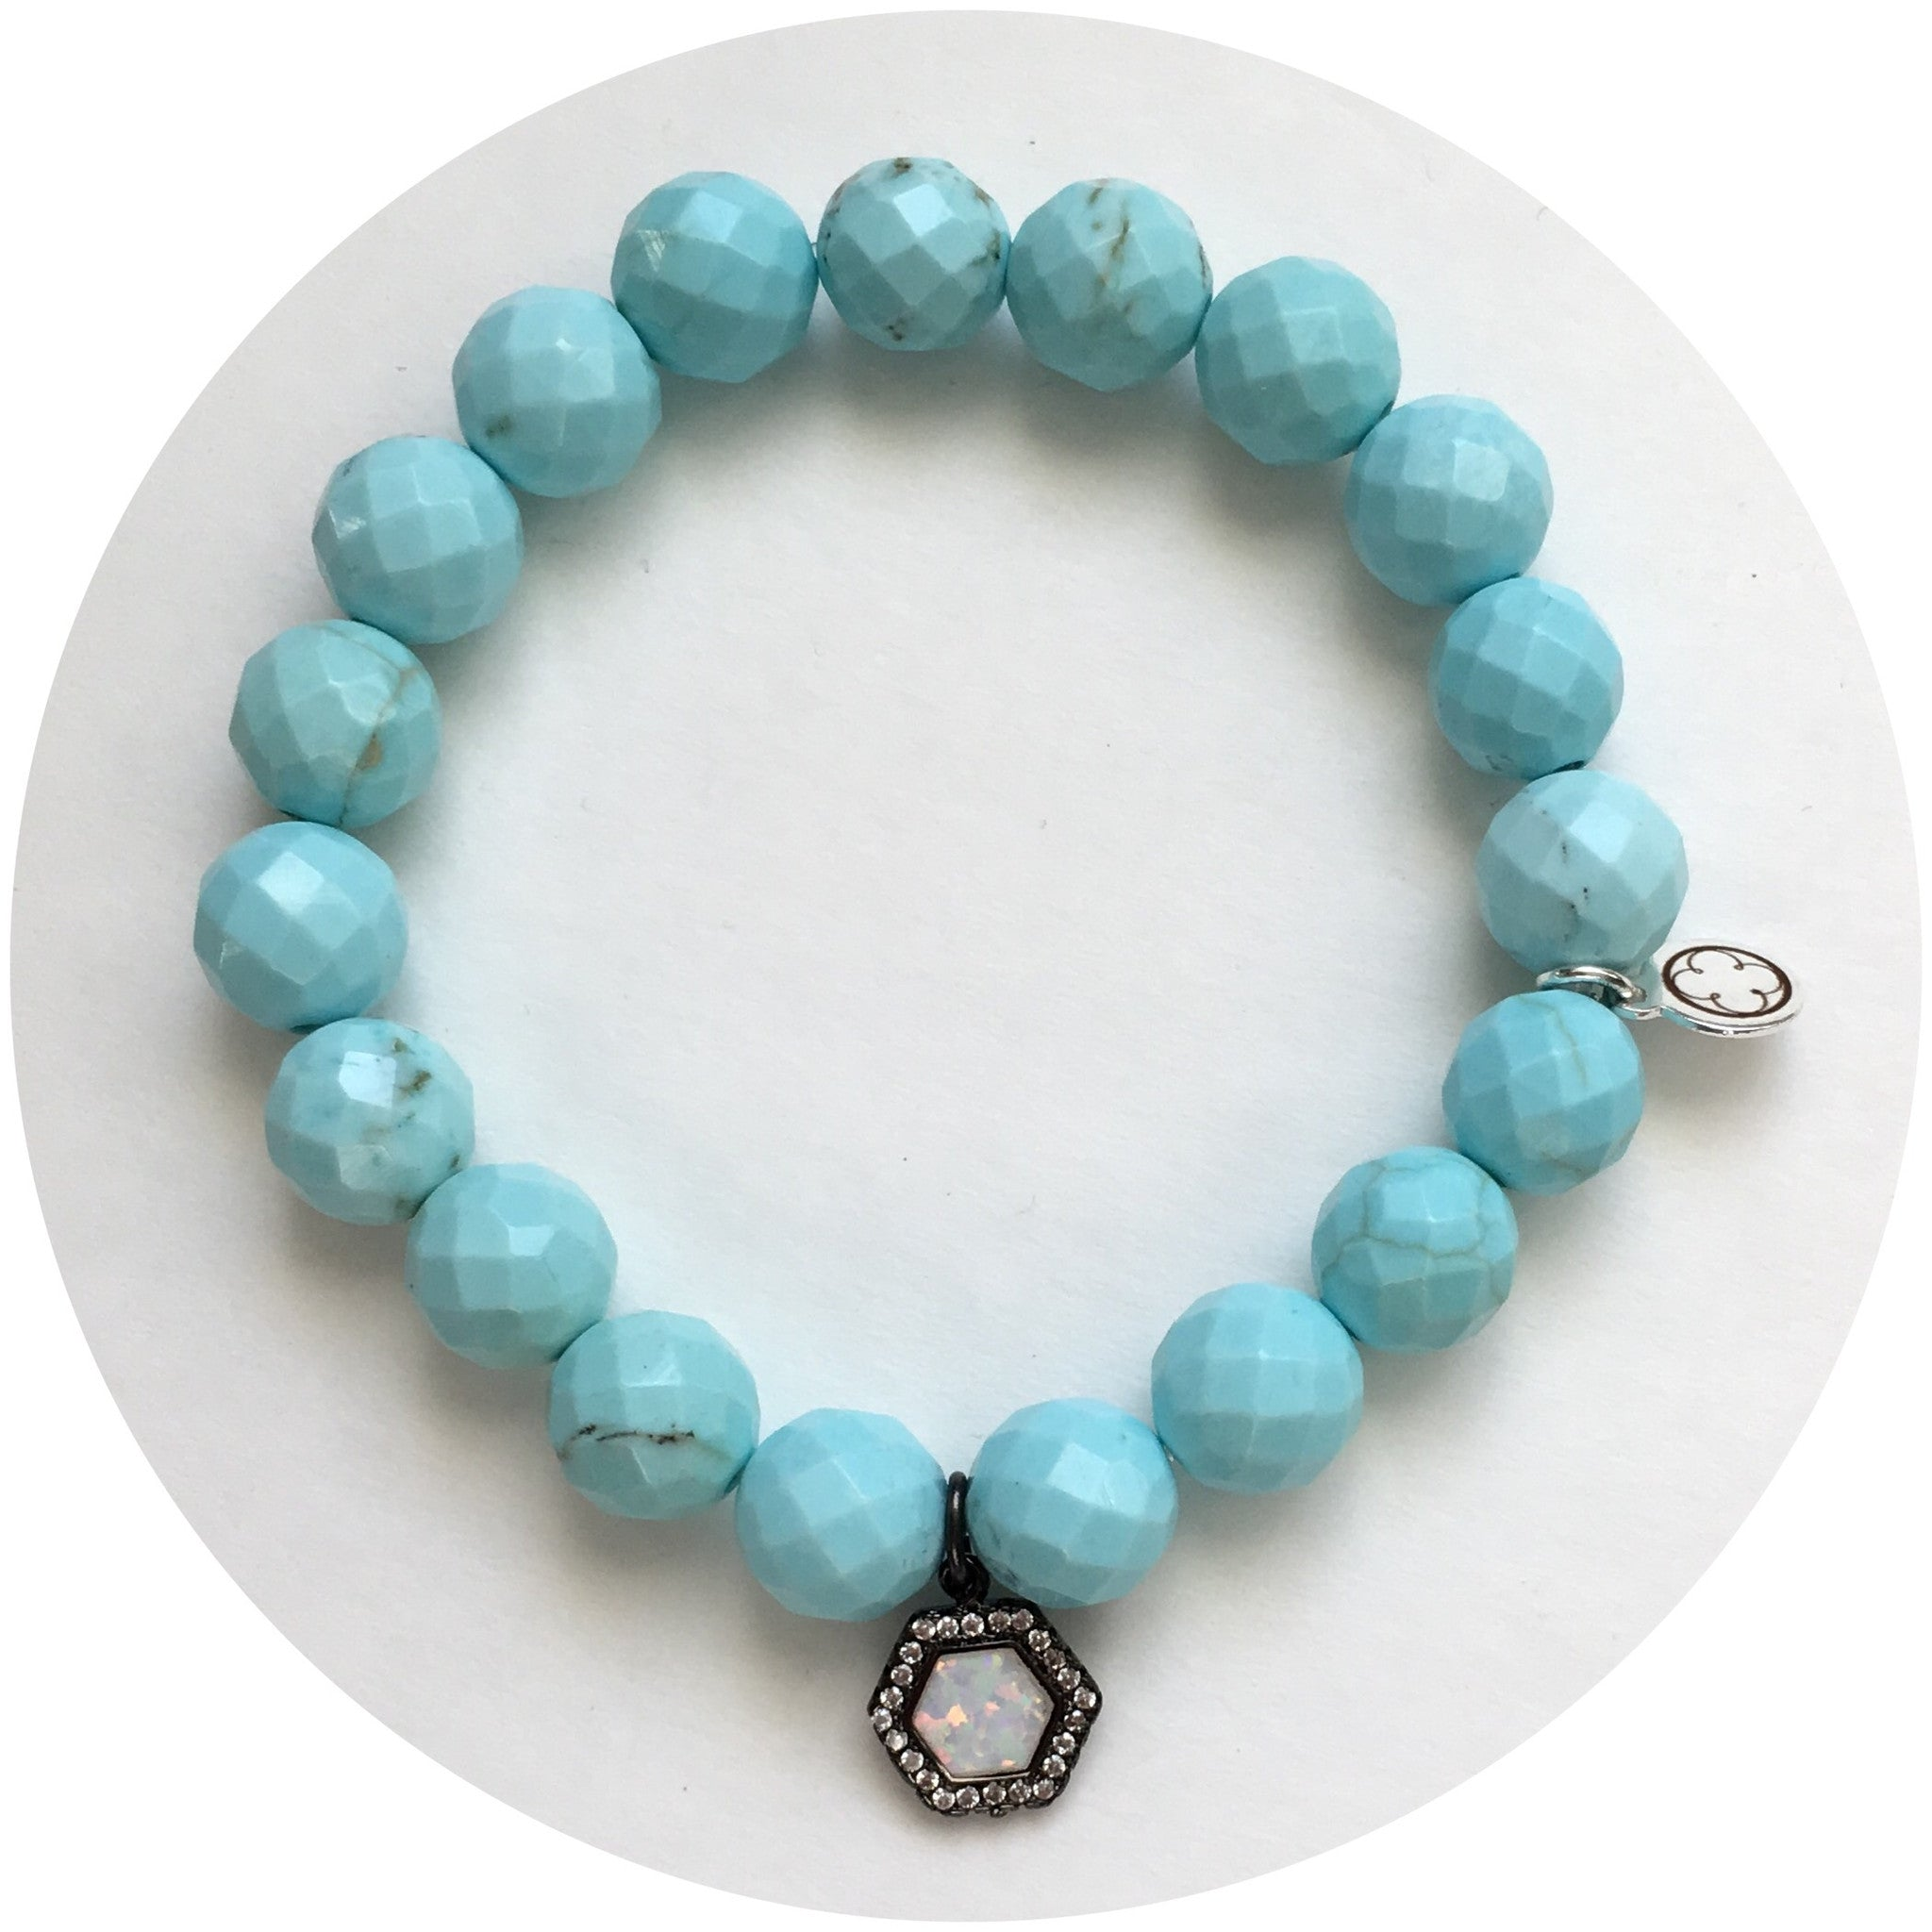 Light Turquoise Magnesite with Pavé Opal Pendant